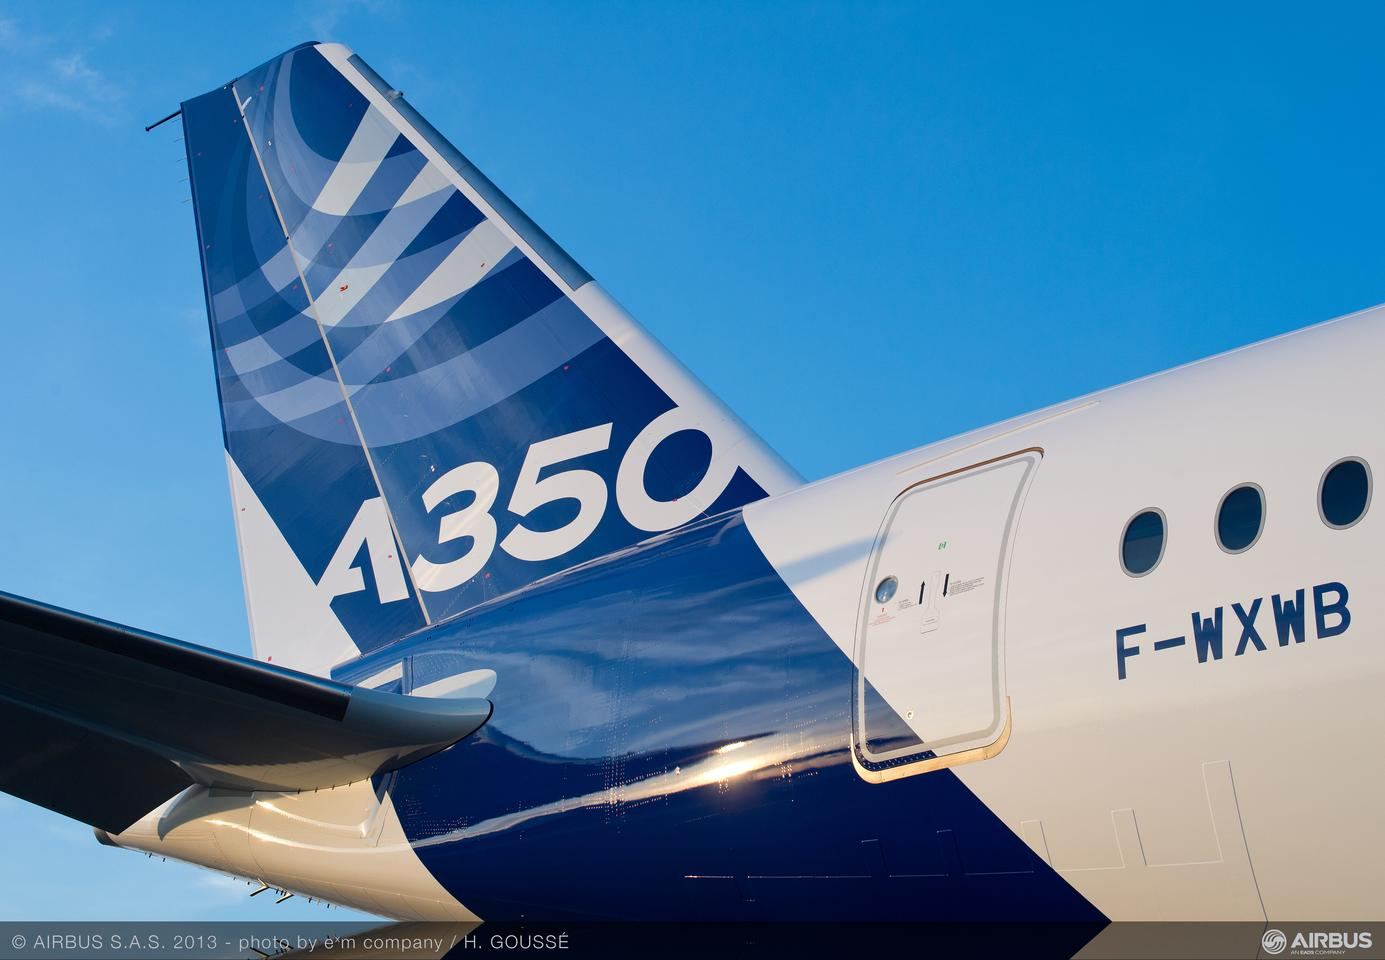 The A350 WXB is made mostly of advanced materials and composites